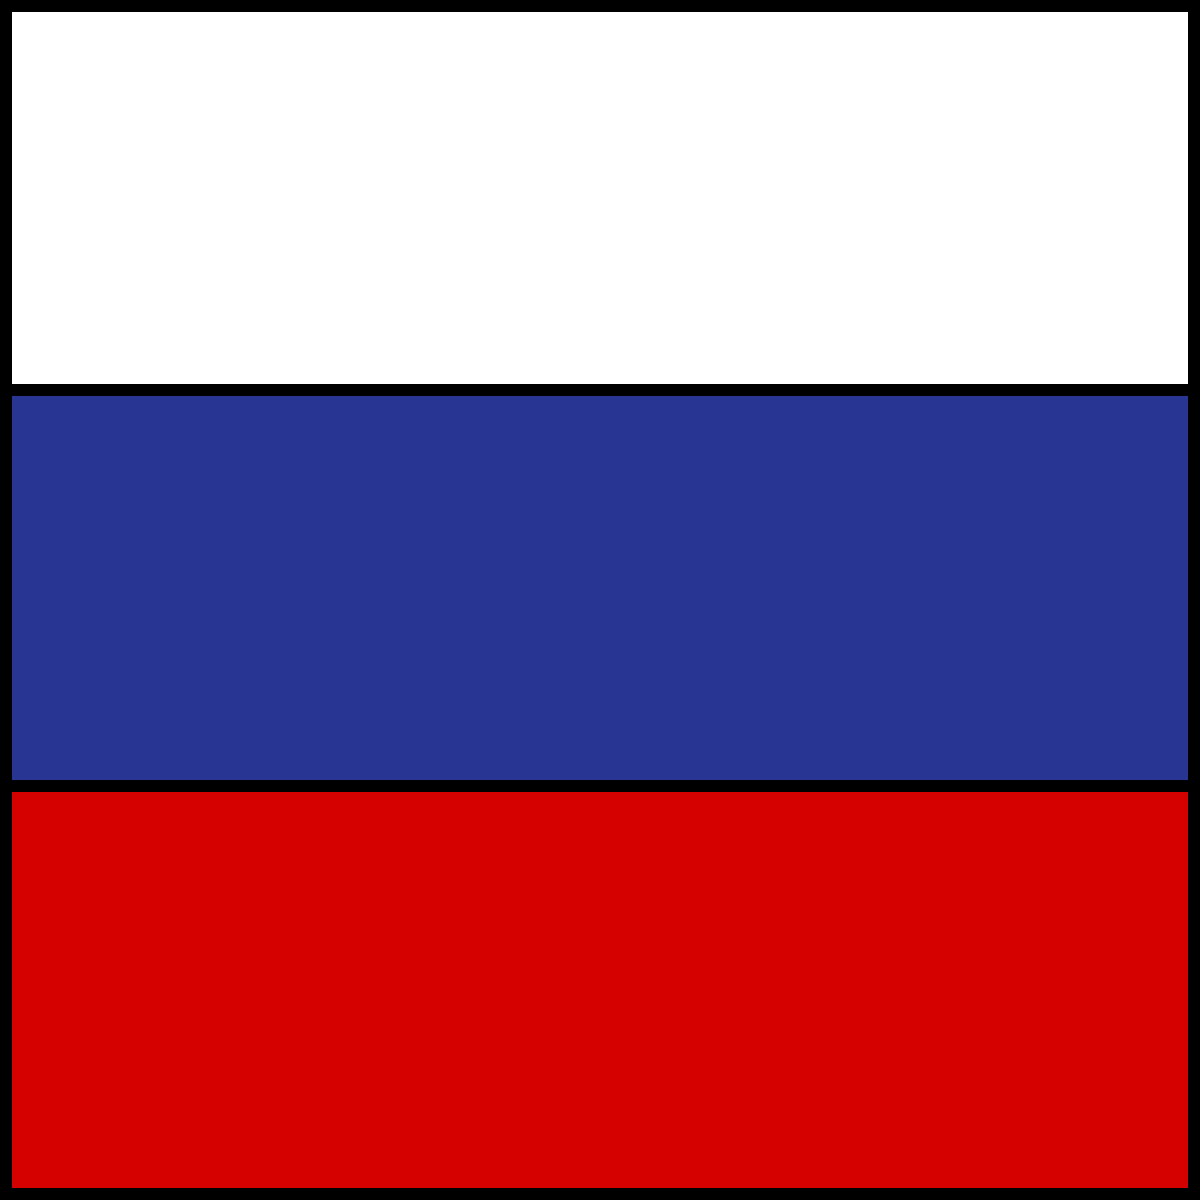 Russian Flag by ConnerM